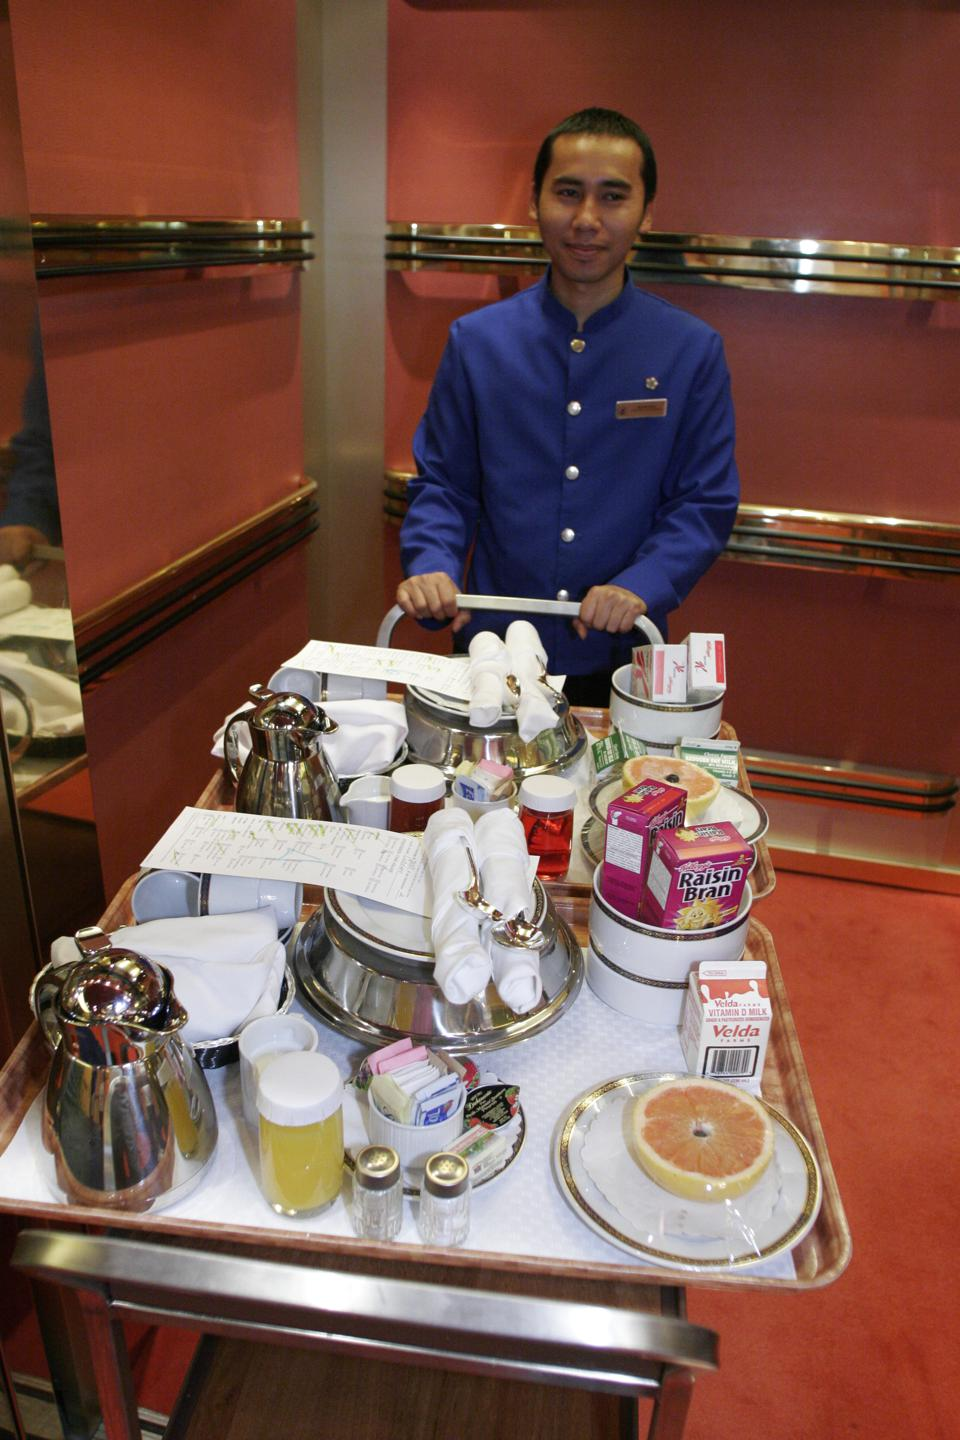 An Asian male with a food cart in the elevator on the mms Noordam.